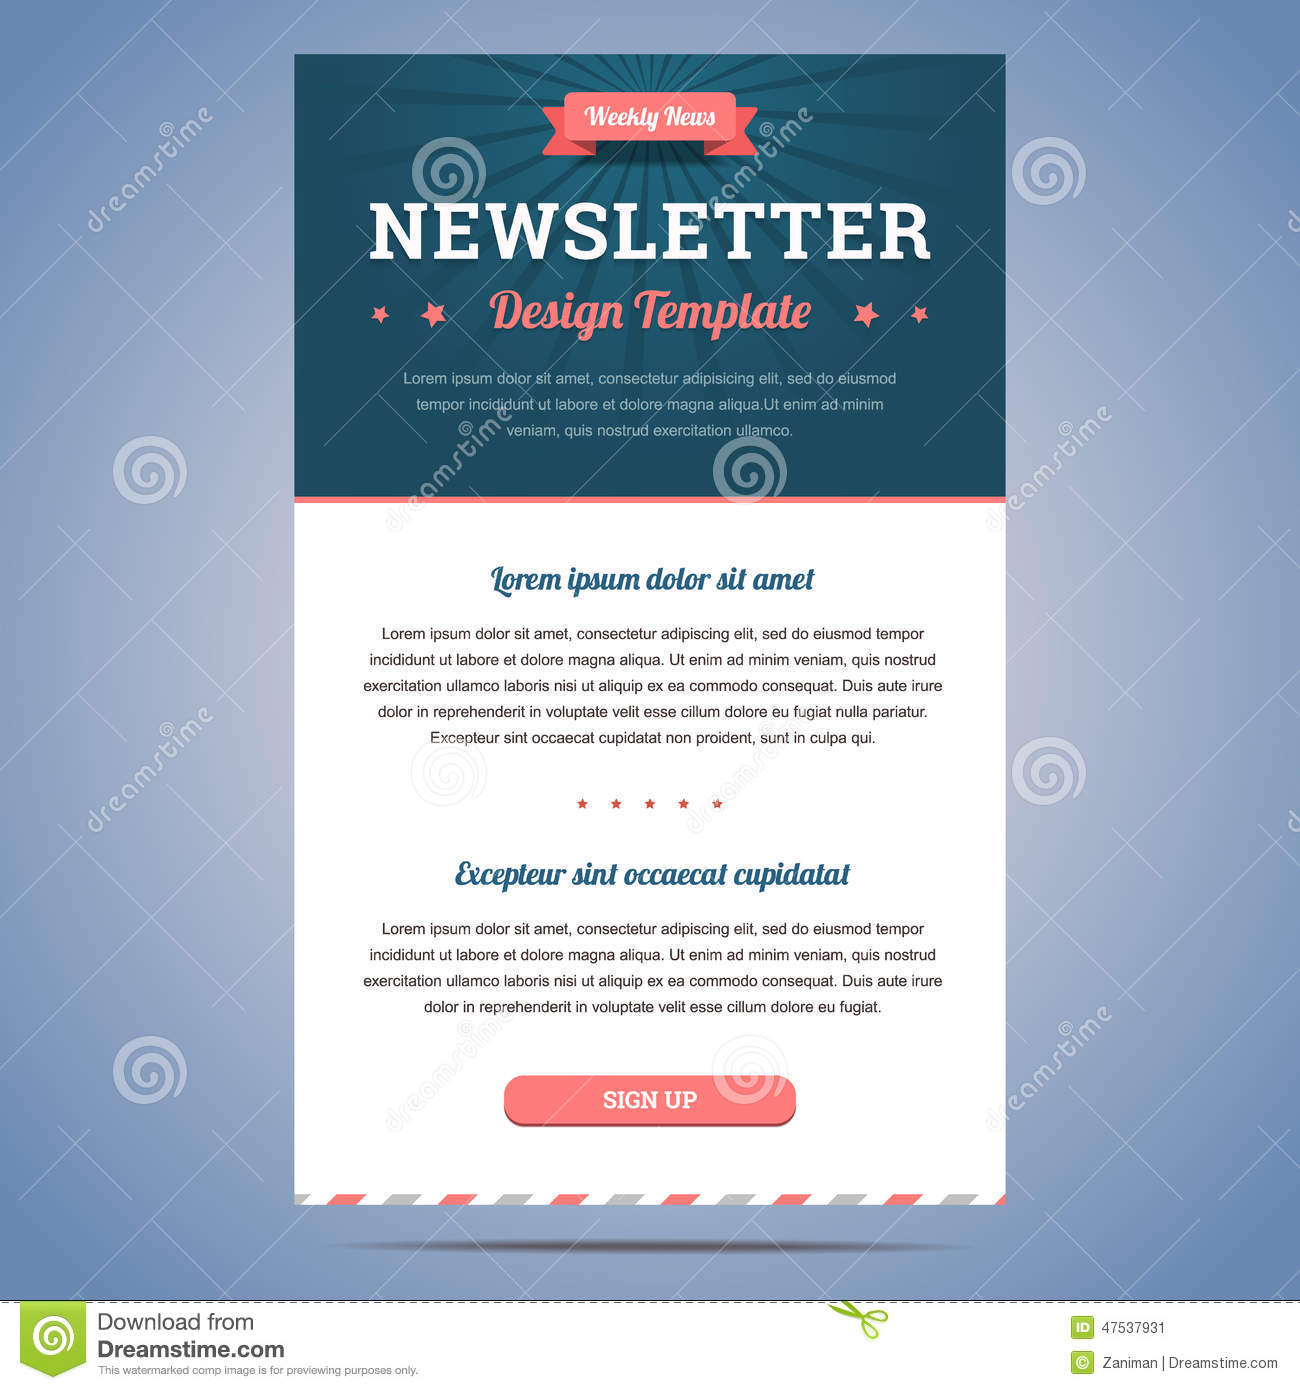 Newsletter design template for weekly company news with header and ...